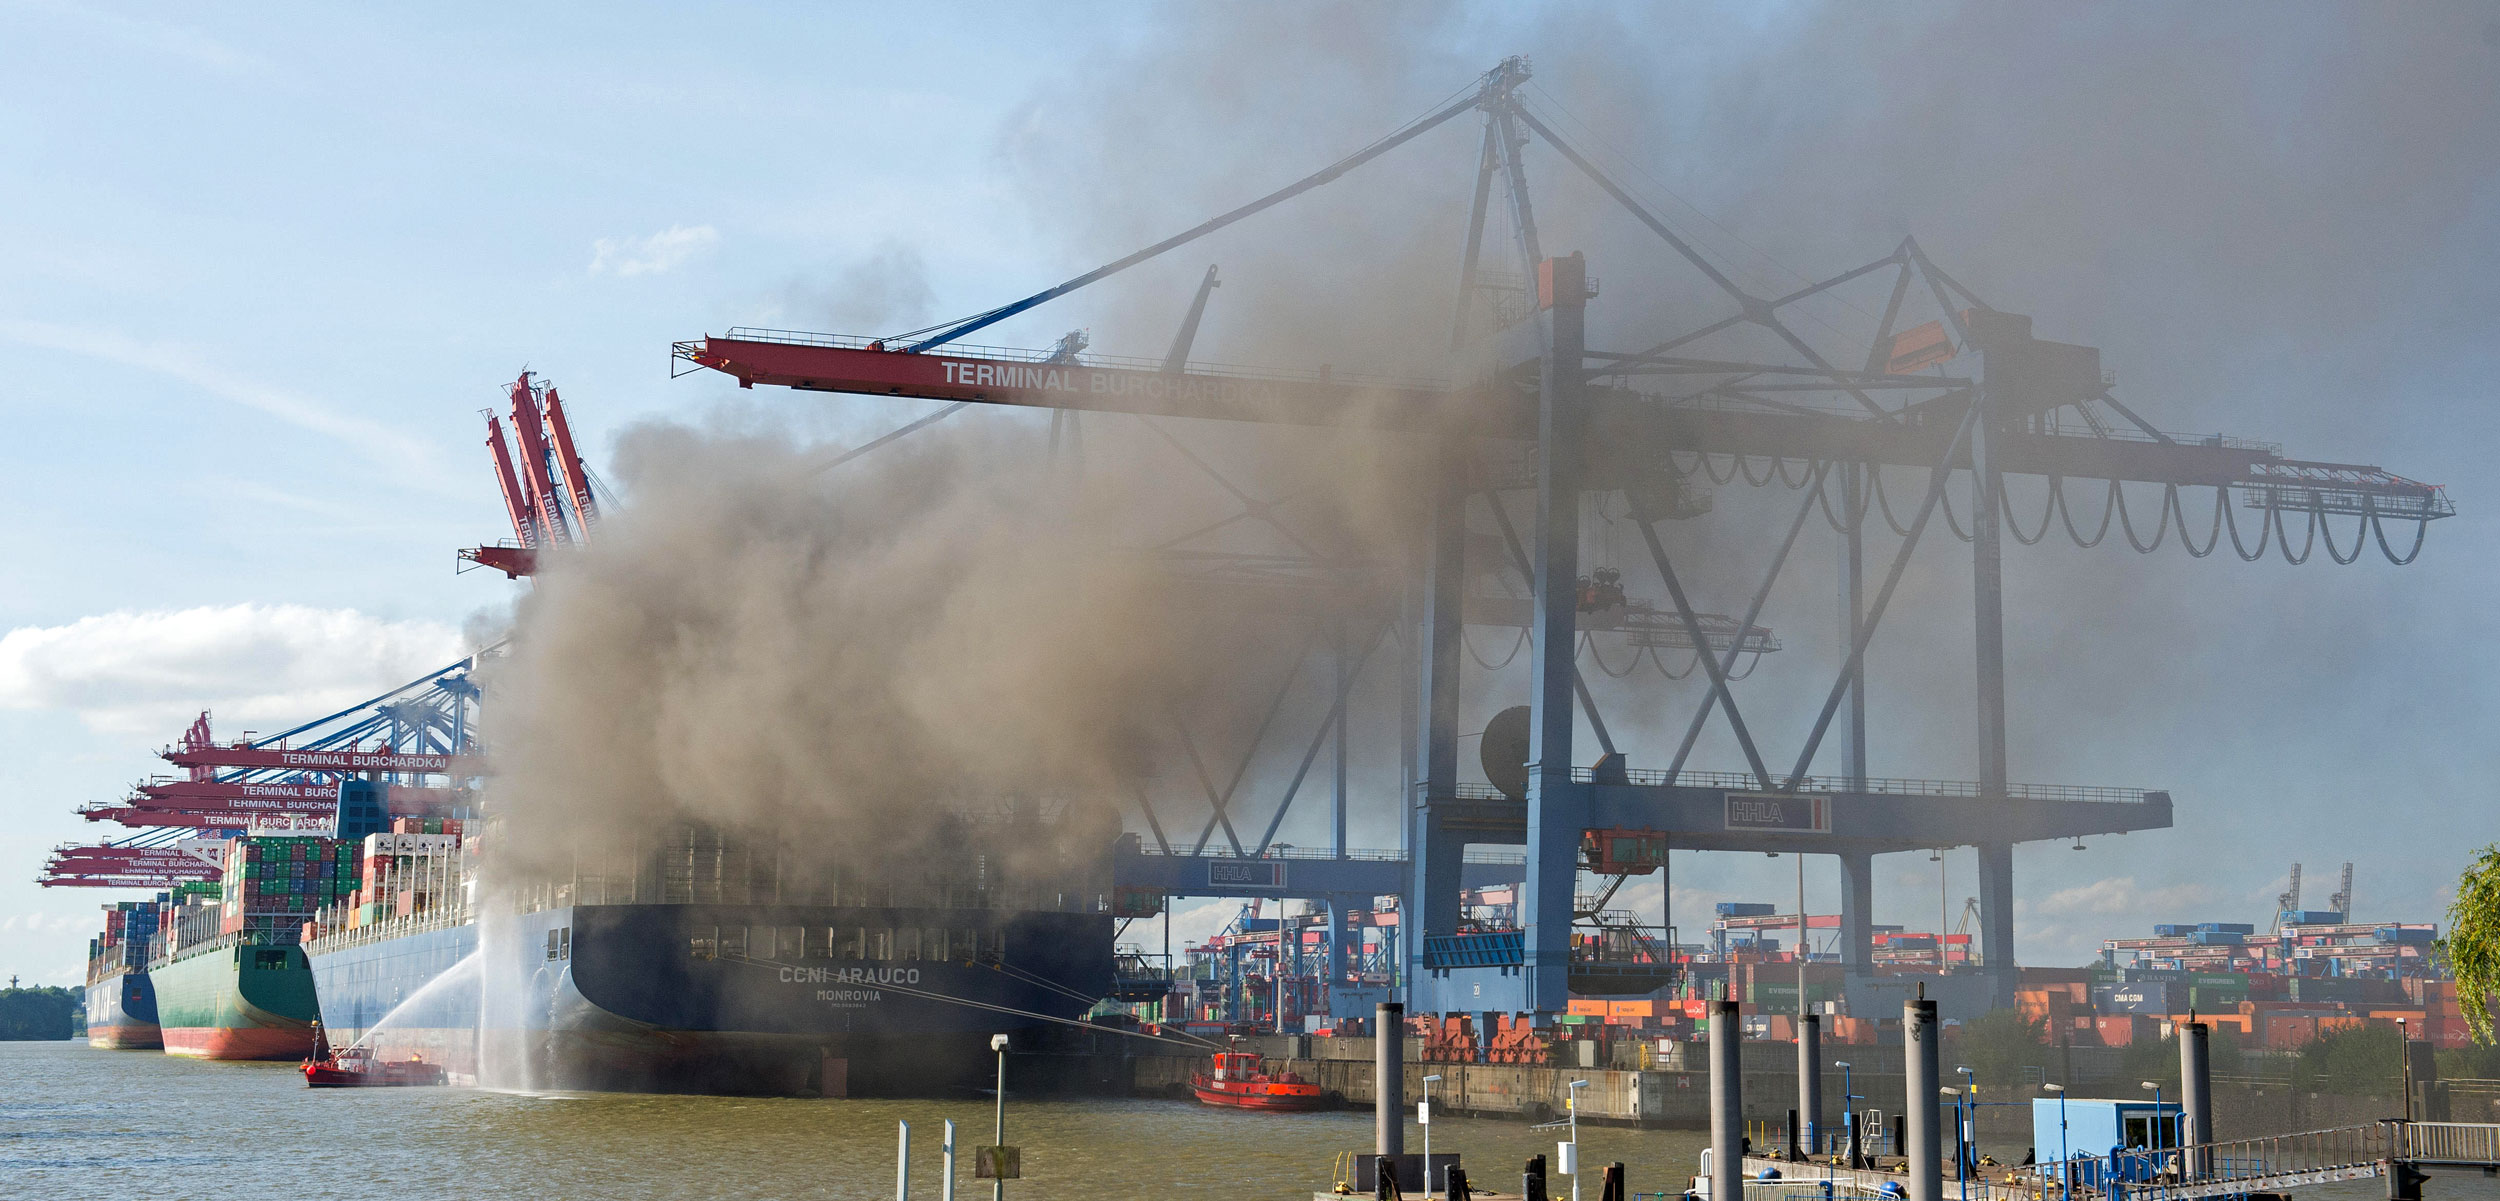 fire aboard a container ship in Hamburg, Germany